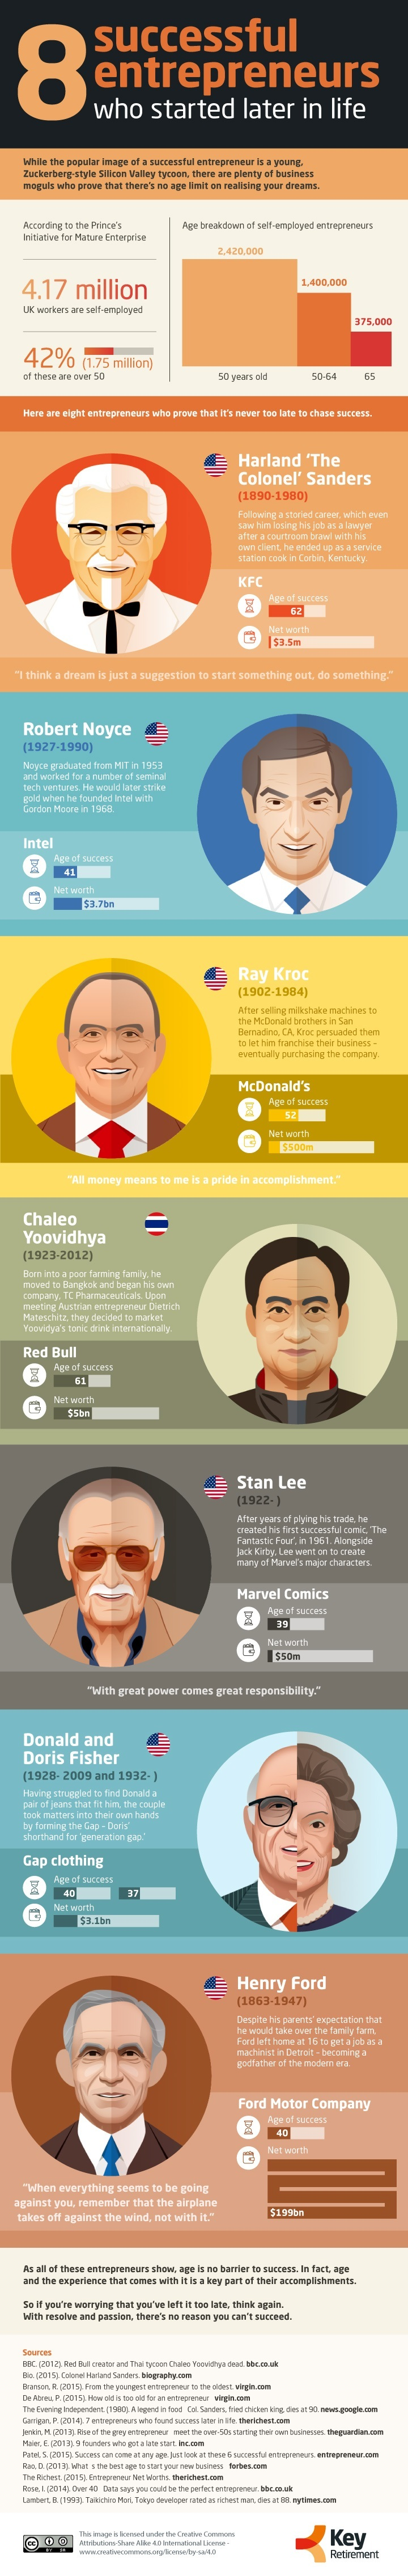 Entrepreneurs who started later in life